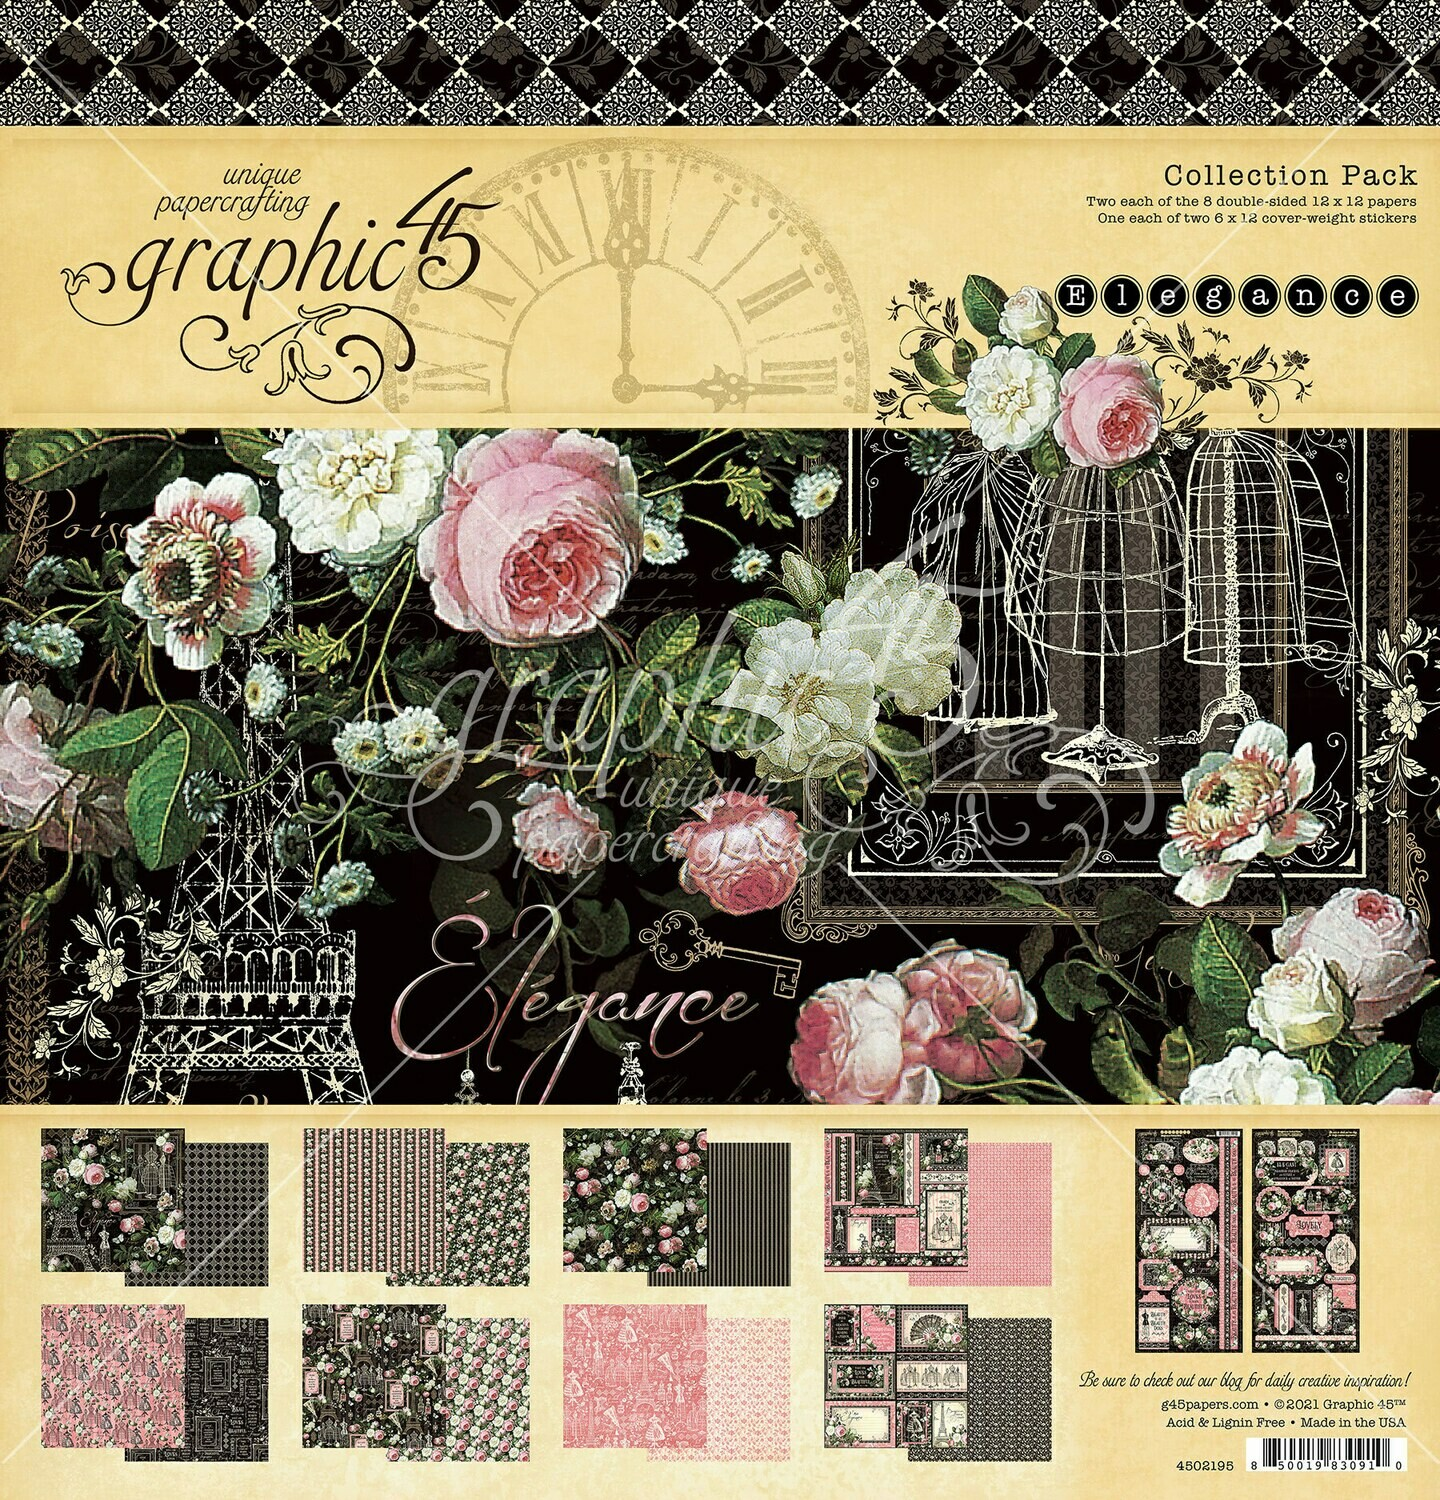 Elegance 12x12 Collection Pack With Stickers - Graphic 45